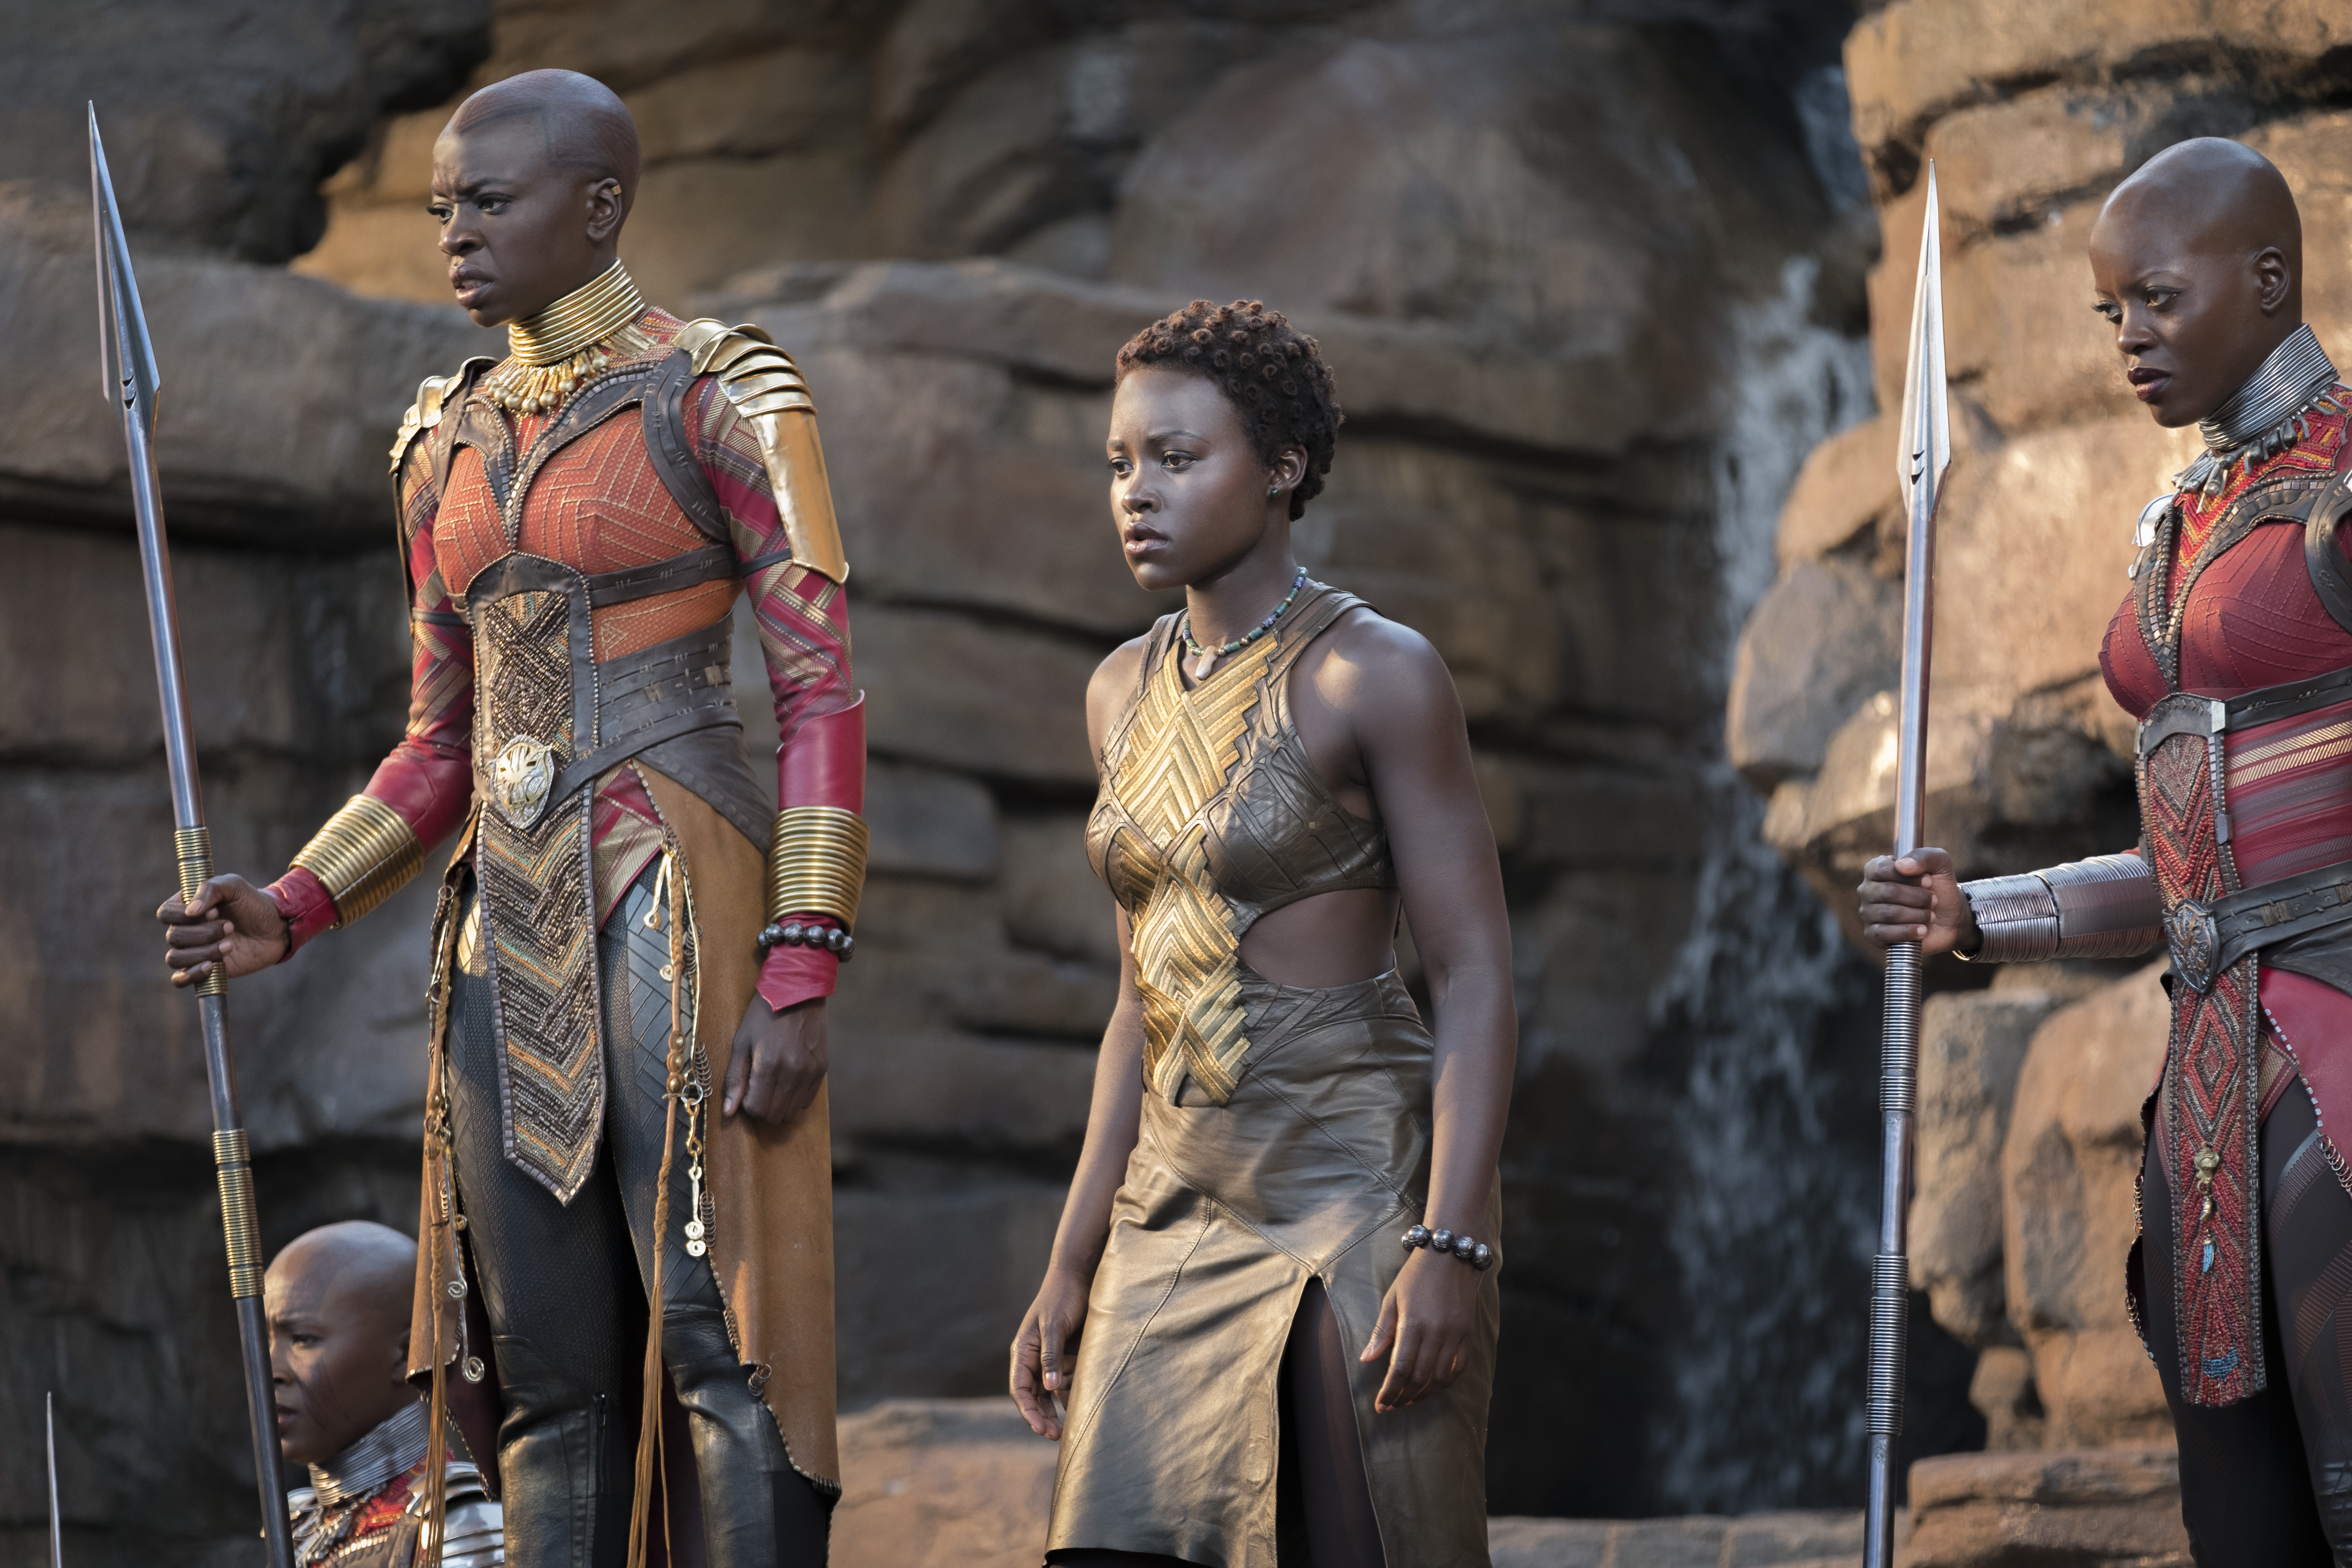 Black Panther has a refreshingly equal amount of female and male warriors.